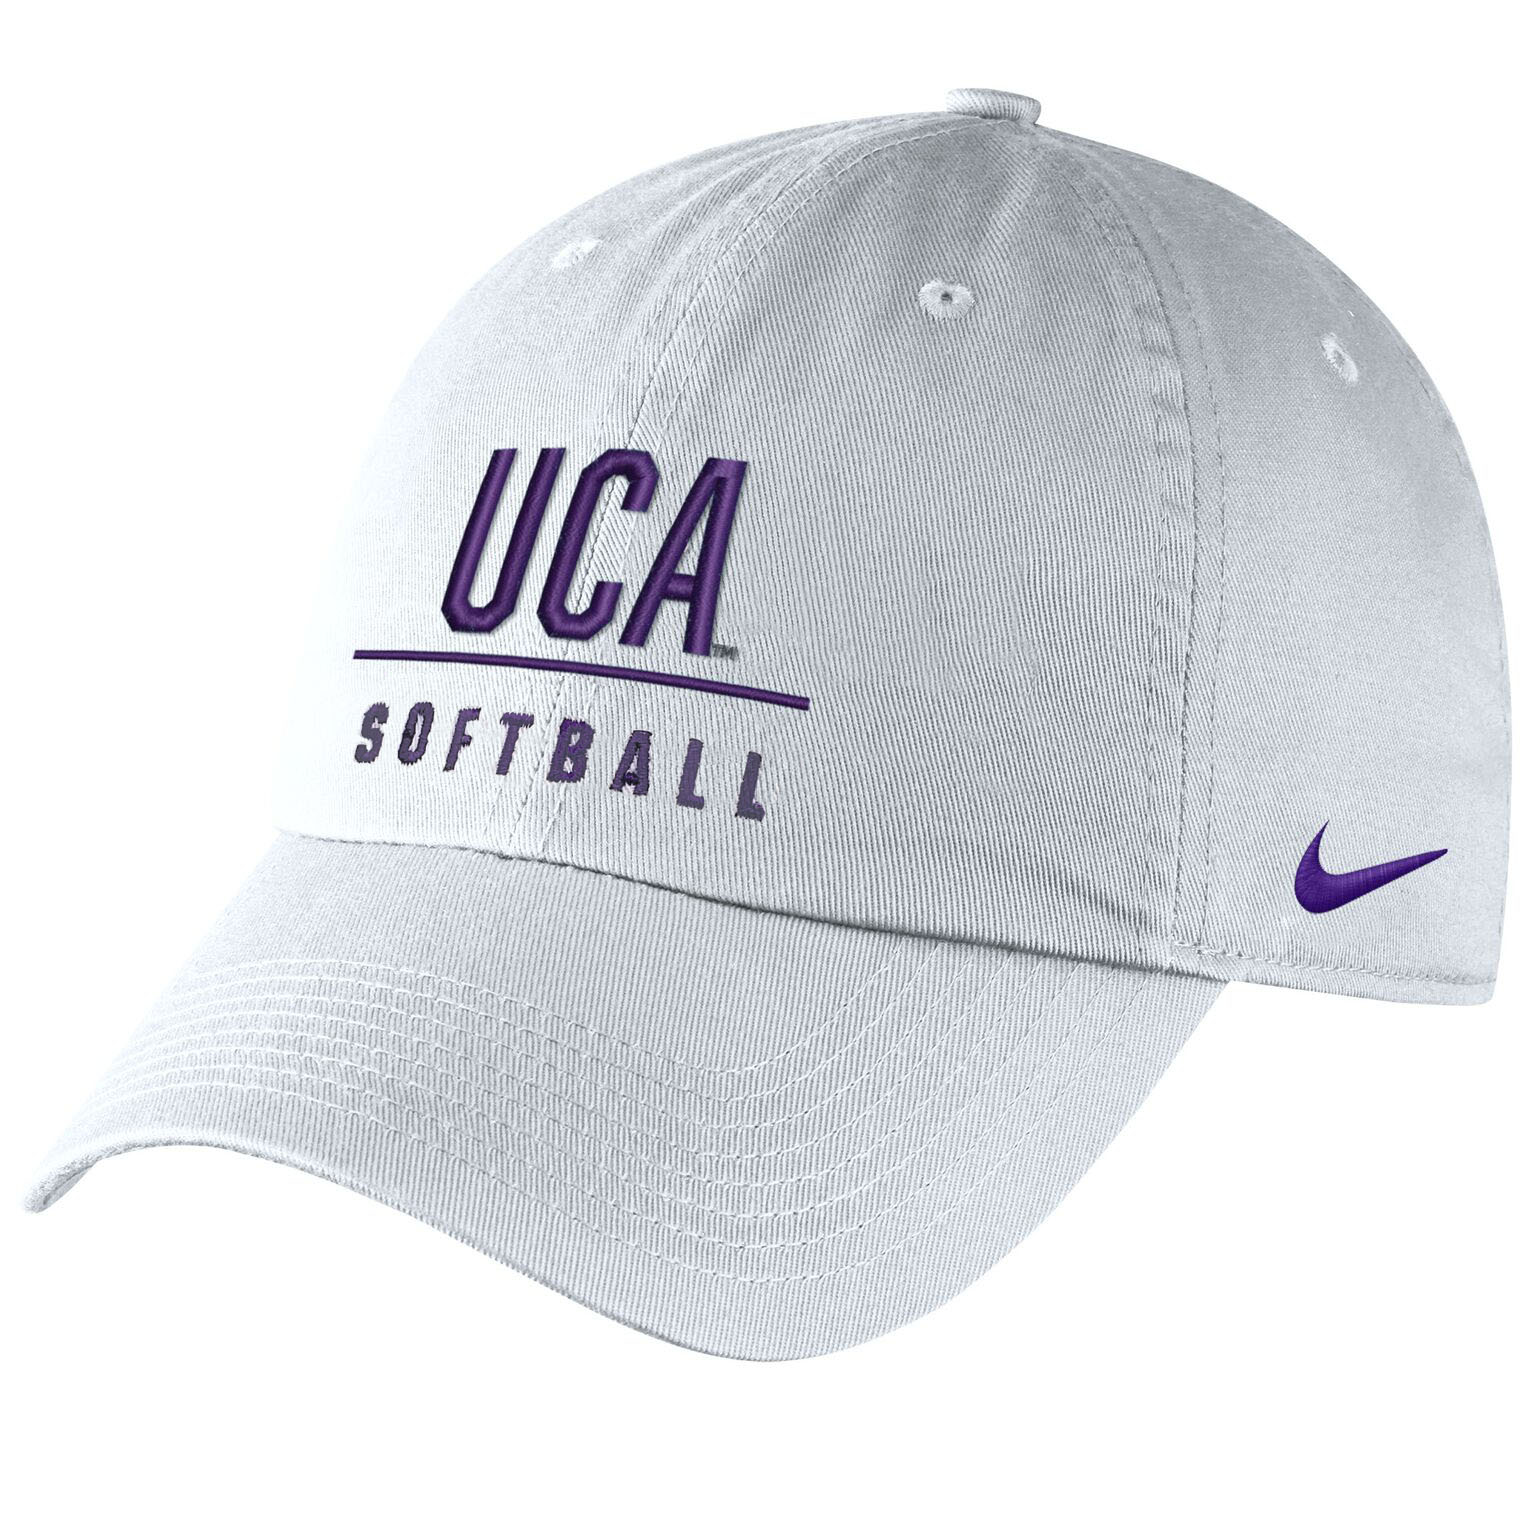 Men's White Campus Hat